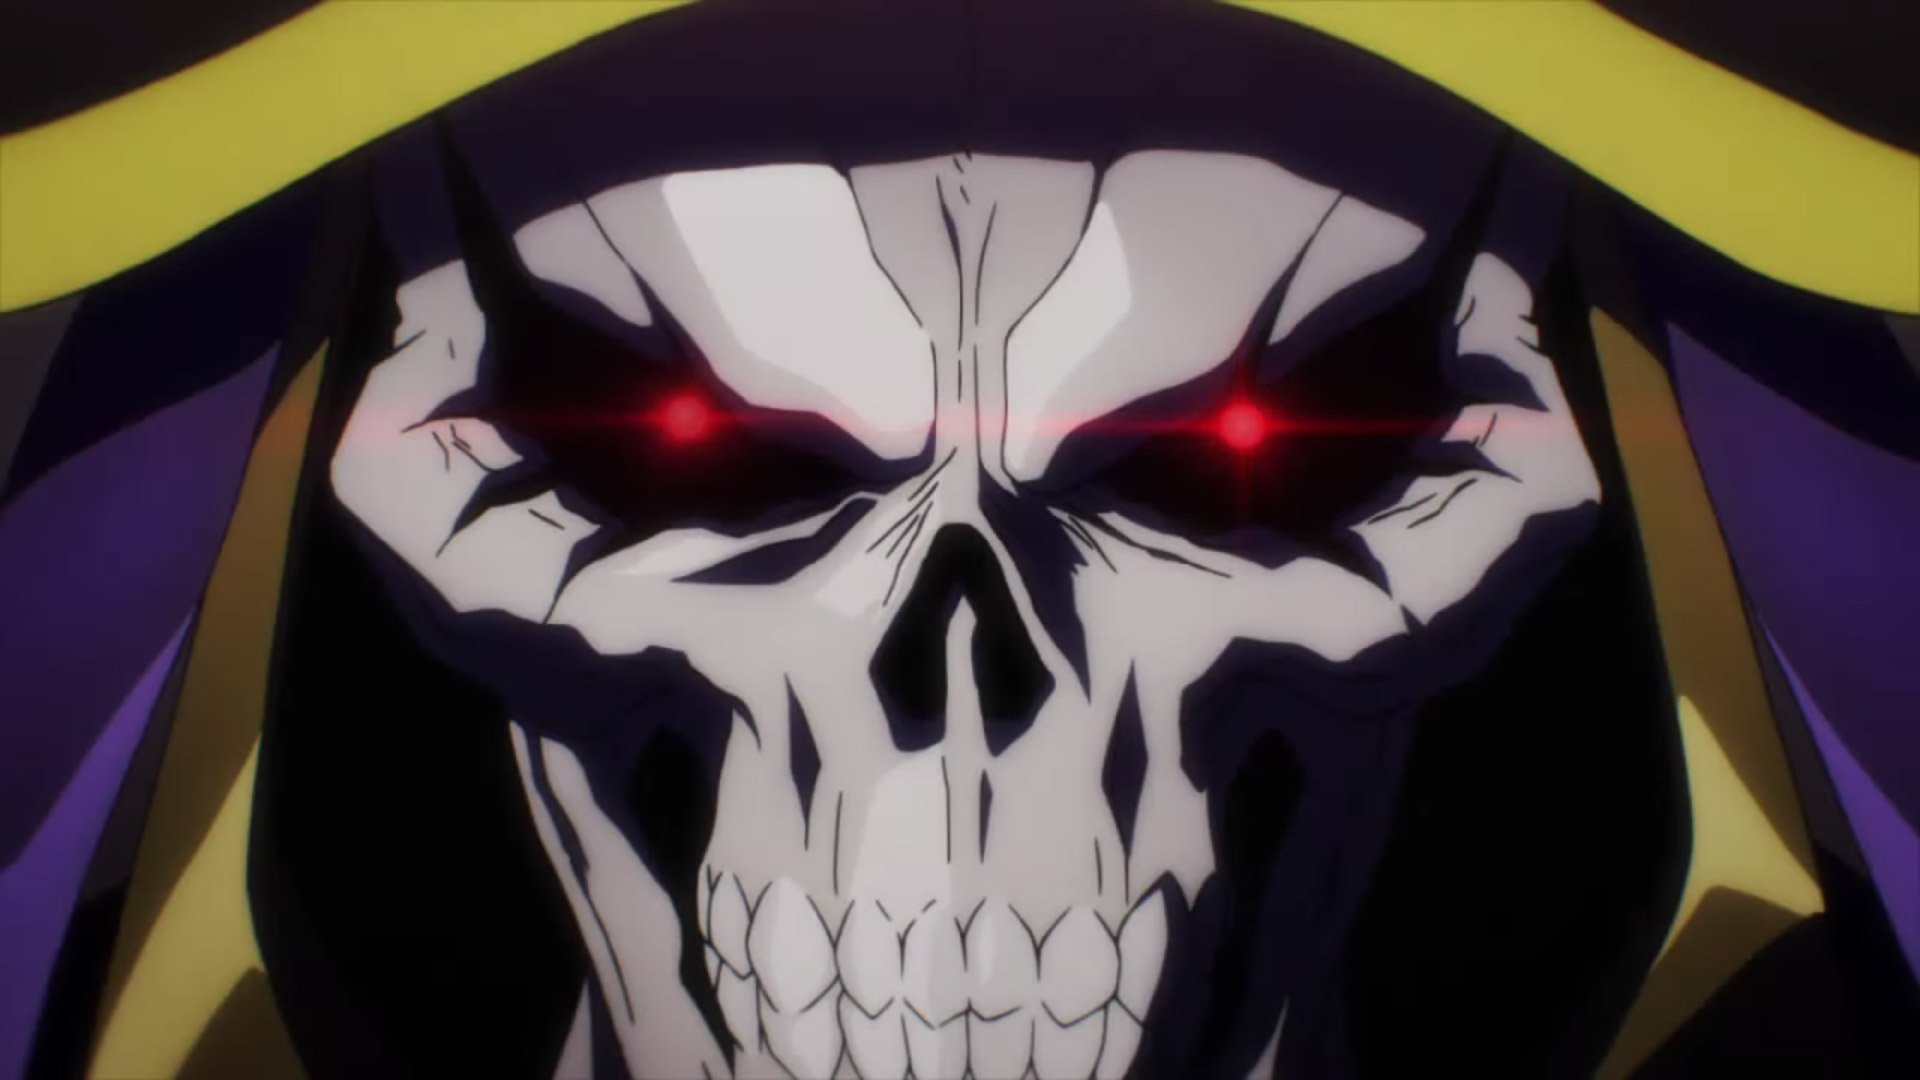 Anime skeletons are a surefire way to make me care about Picross screenshot